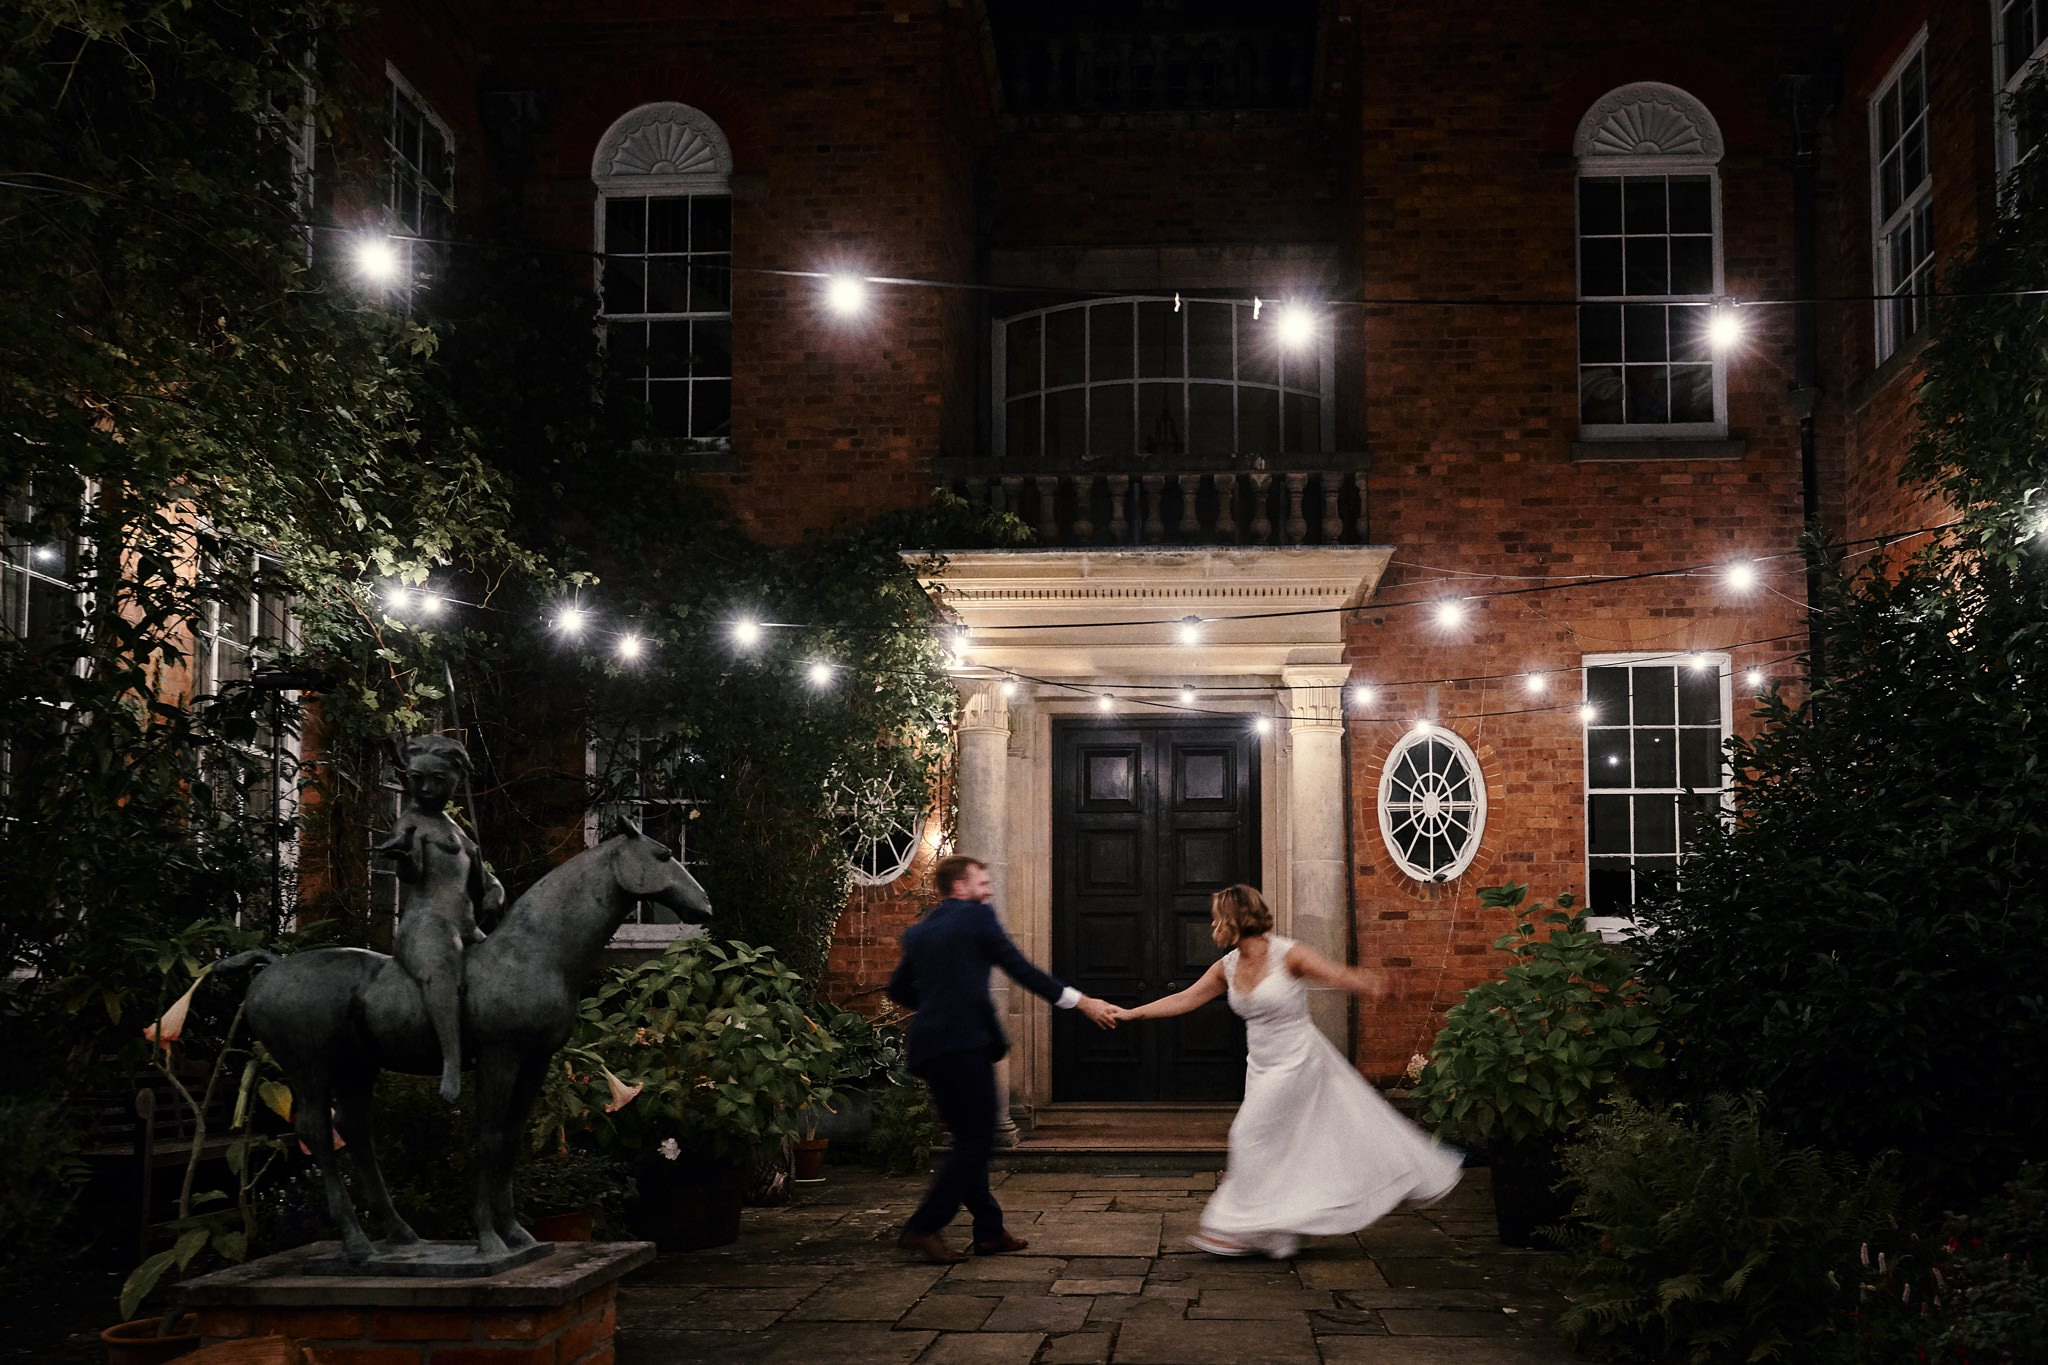 Bride and Groom dance outside at Walcot Hall, Shropshire